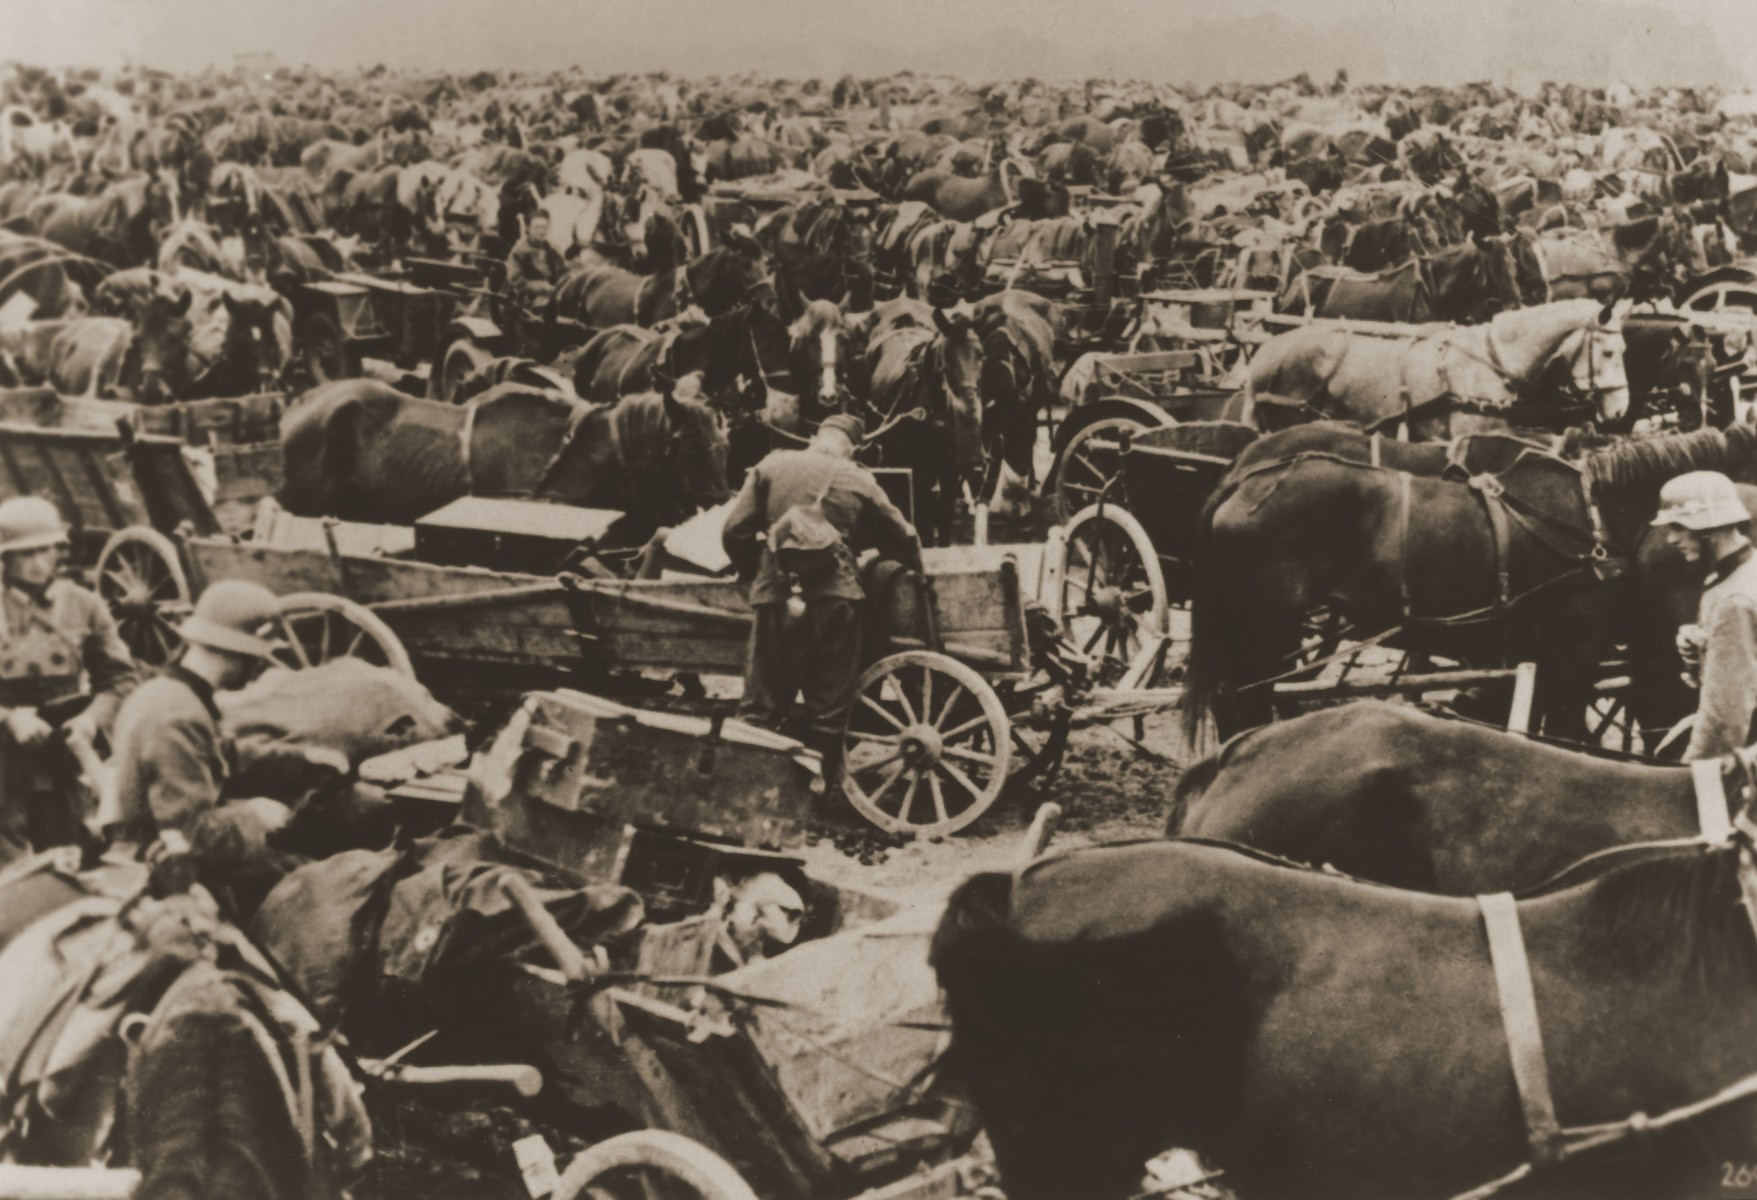 German soldiers stand among a vast assembly of horse-drawn wagons during the invasion of Poland.